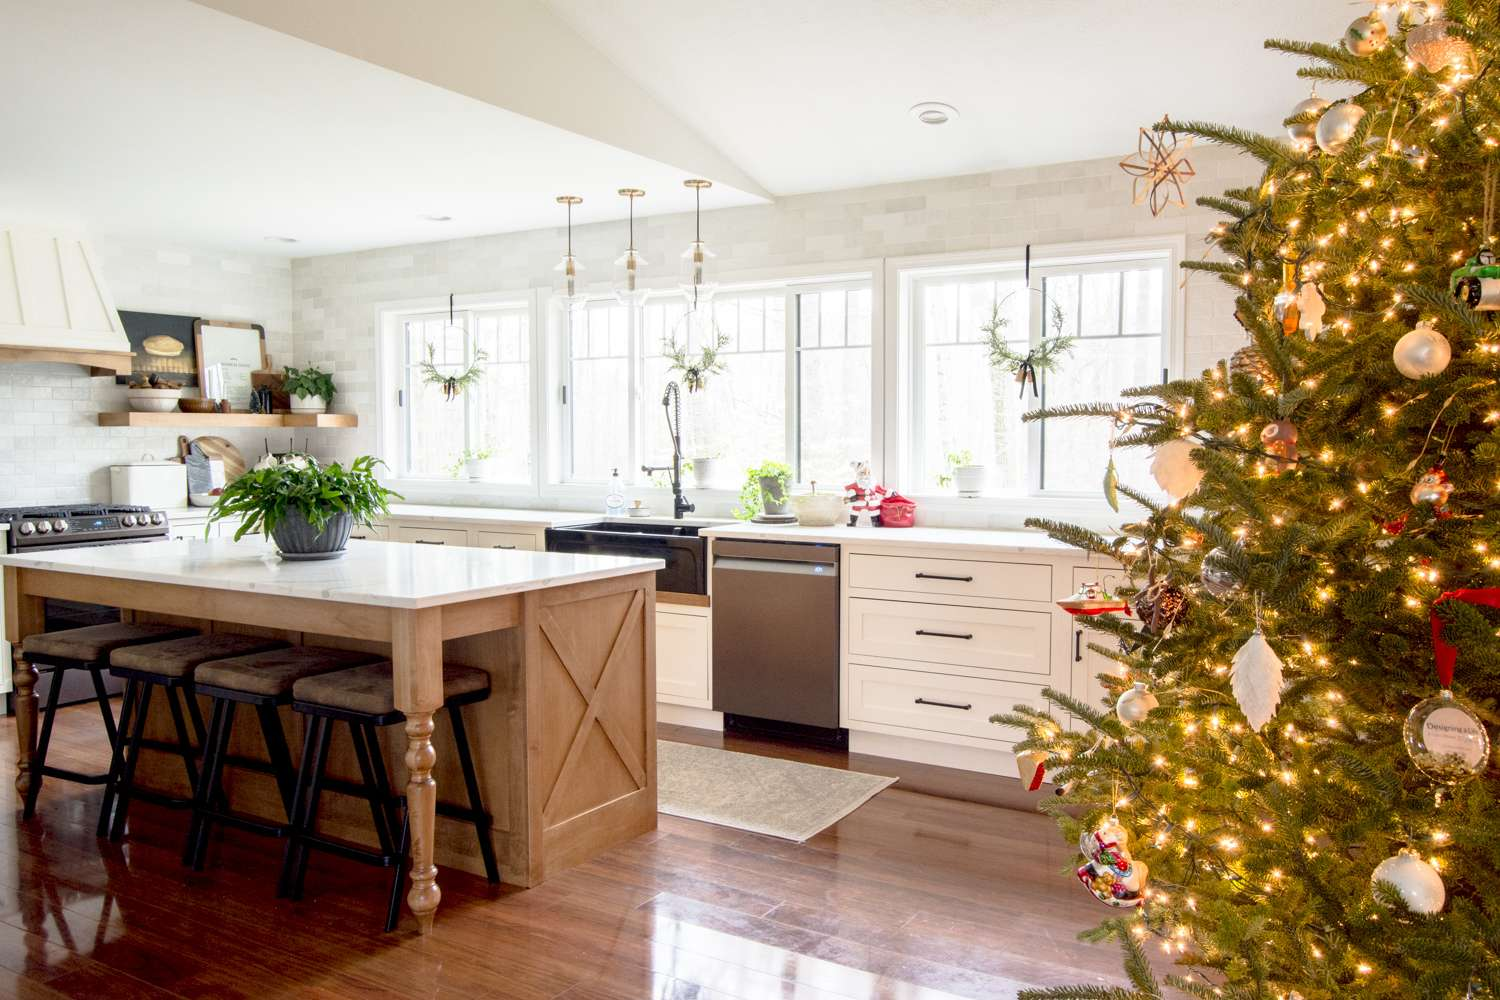 Modern farmhouse kitchen decorated for Christmas.